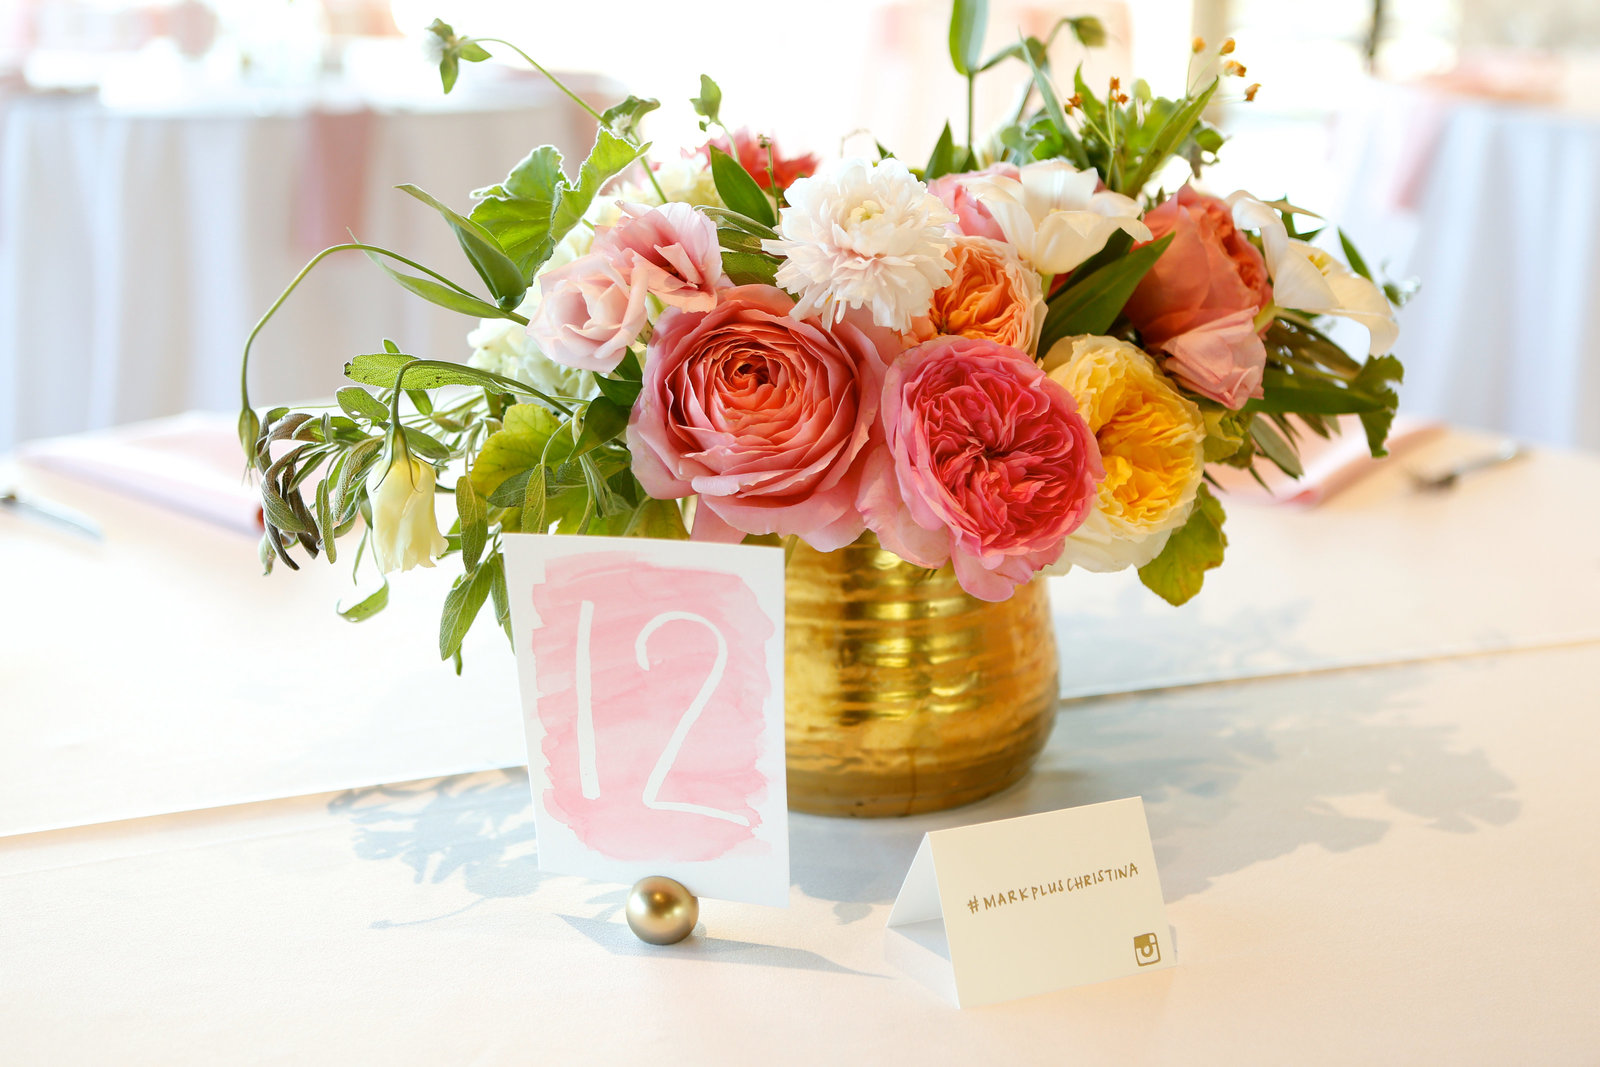 gilded, colorful and lush centerpiece with watercolor table number